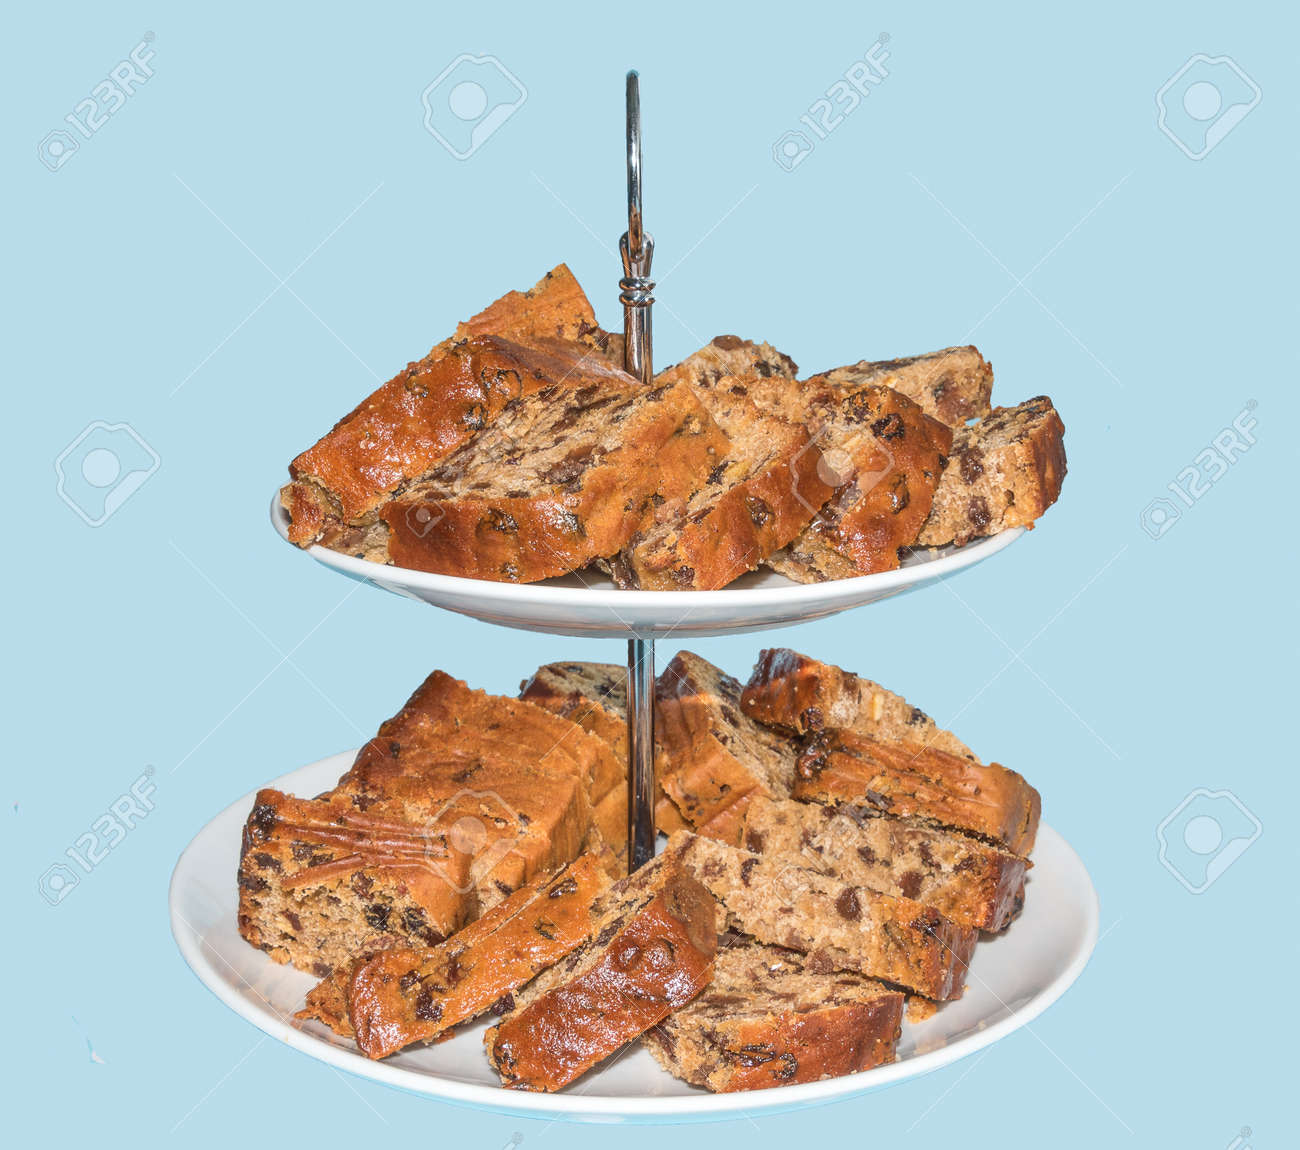 Afternoon Tea Welsh Bara Brith On A Cake Stand Isolated On A Stock Photo Picture And Royalty Free Image Image 86263298